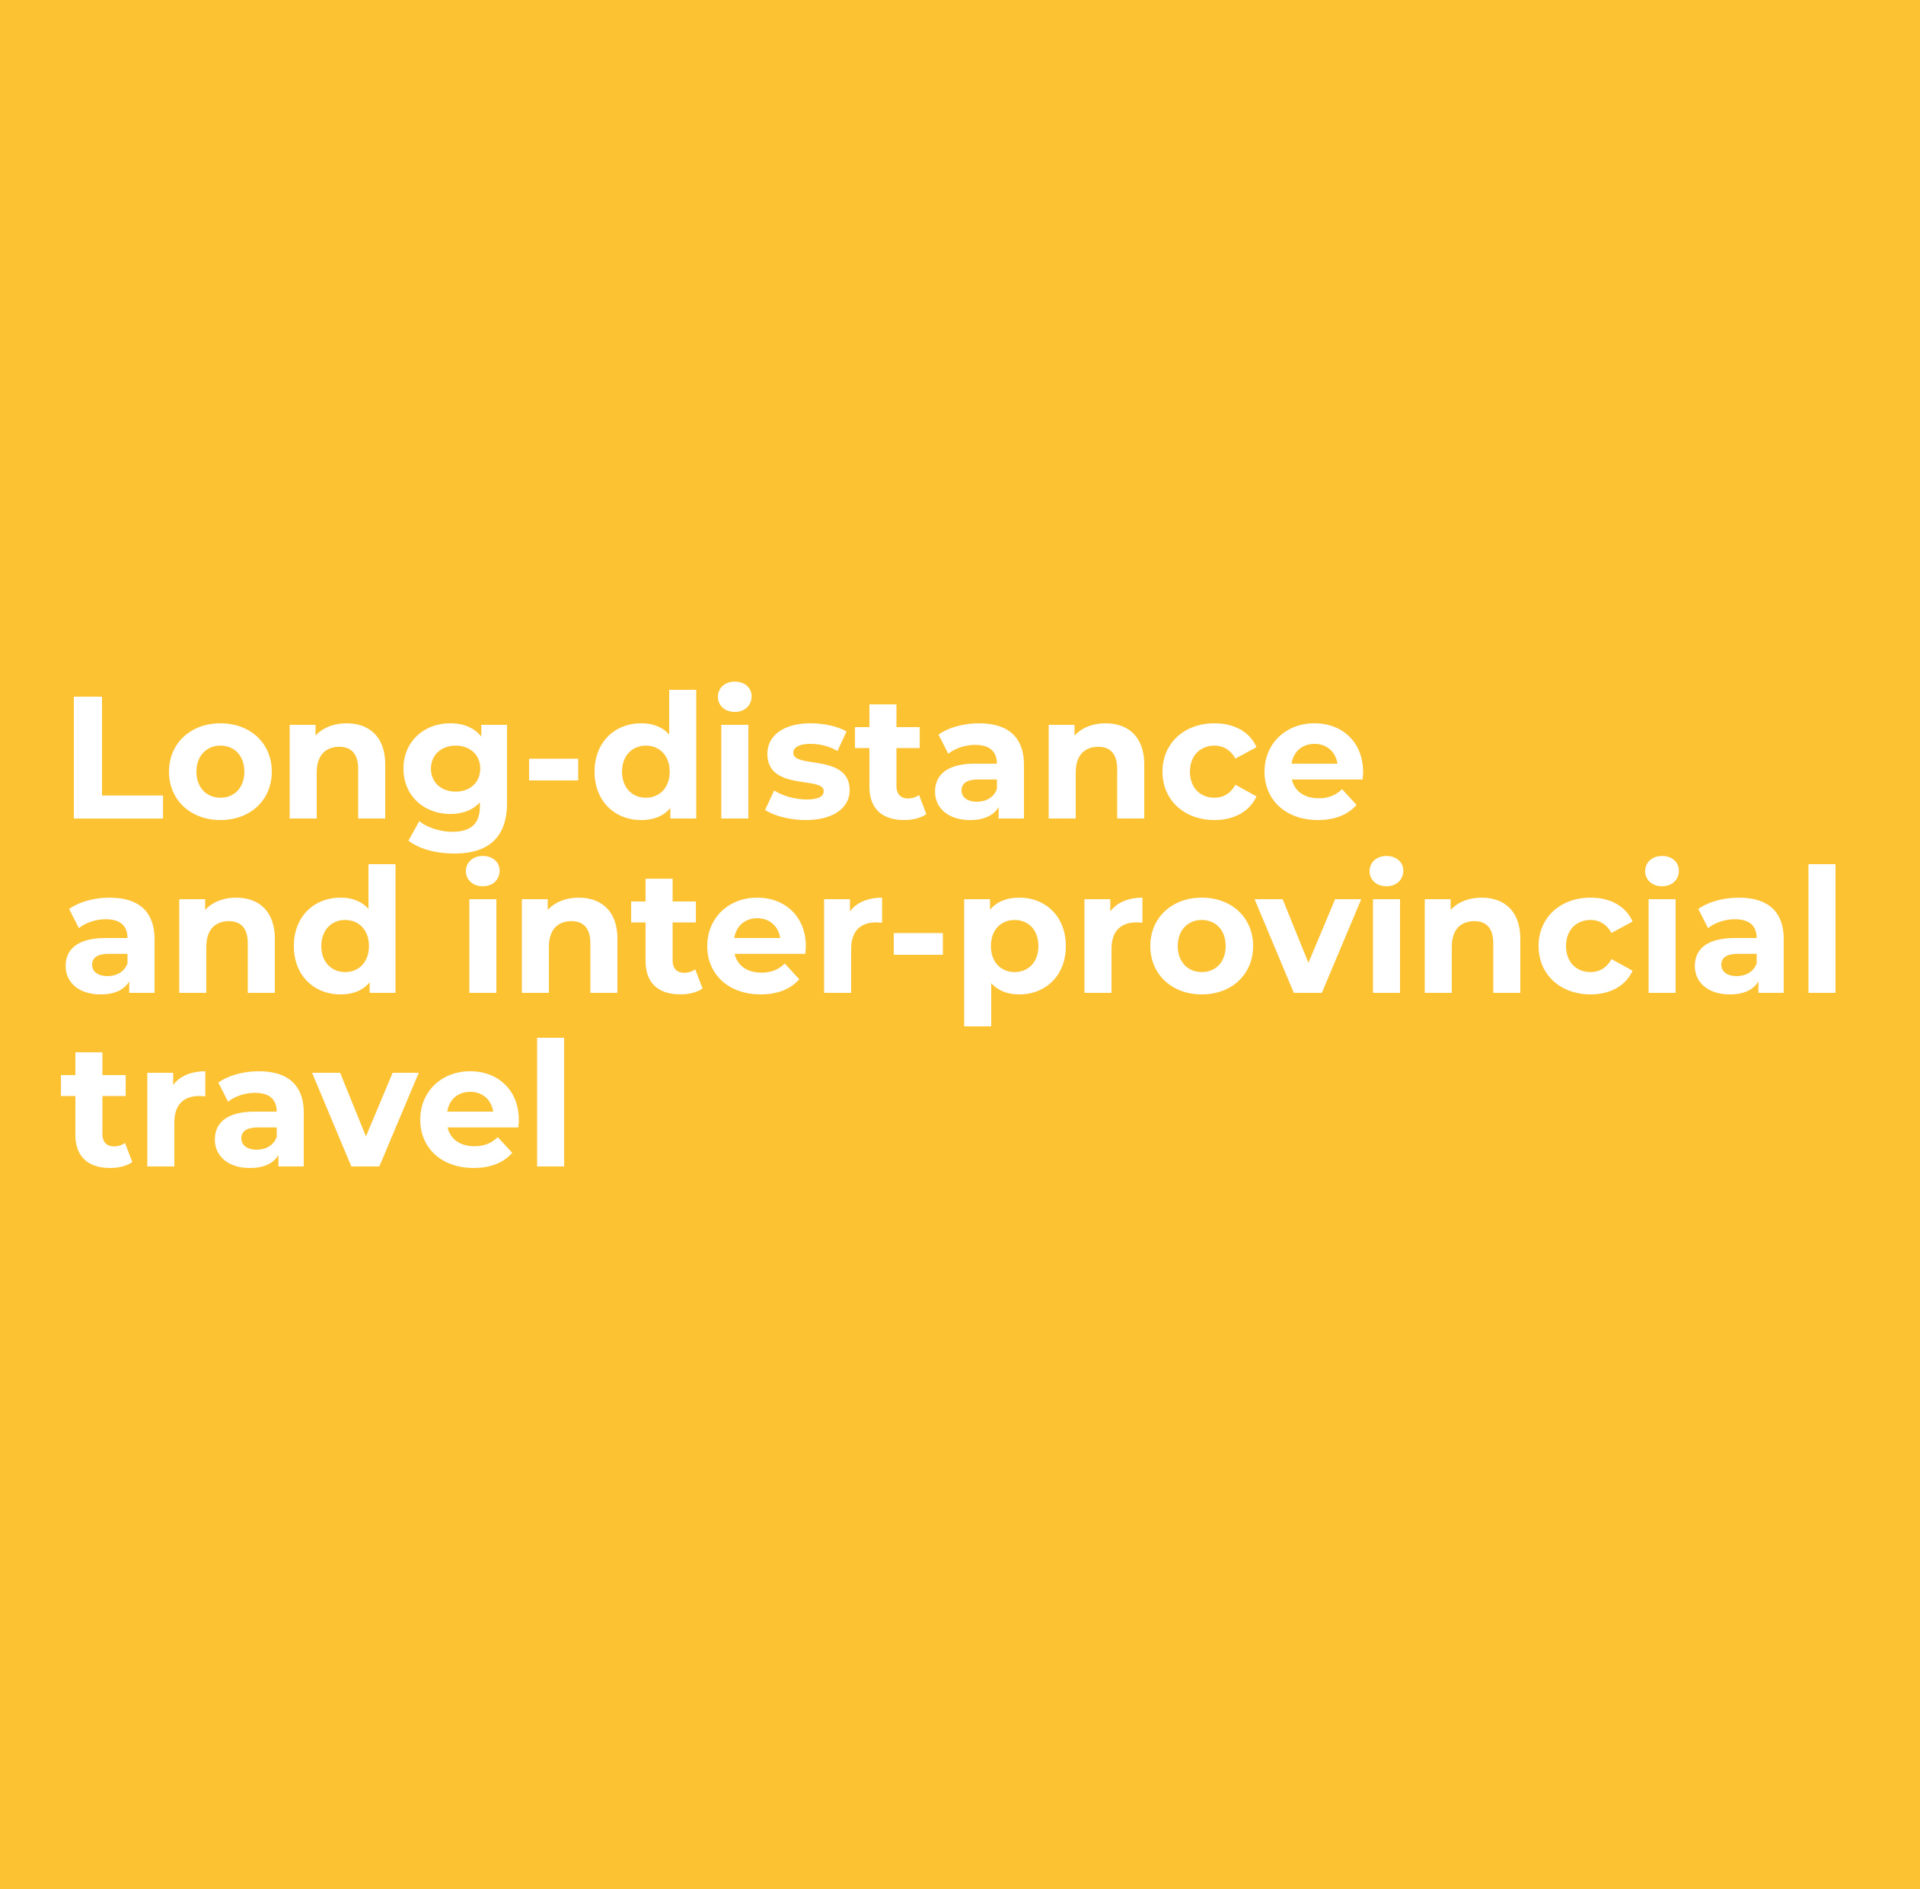 Long-distance and inter-provincial travel